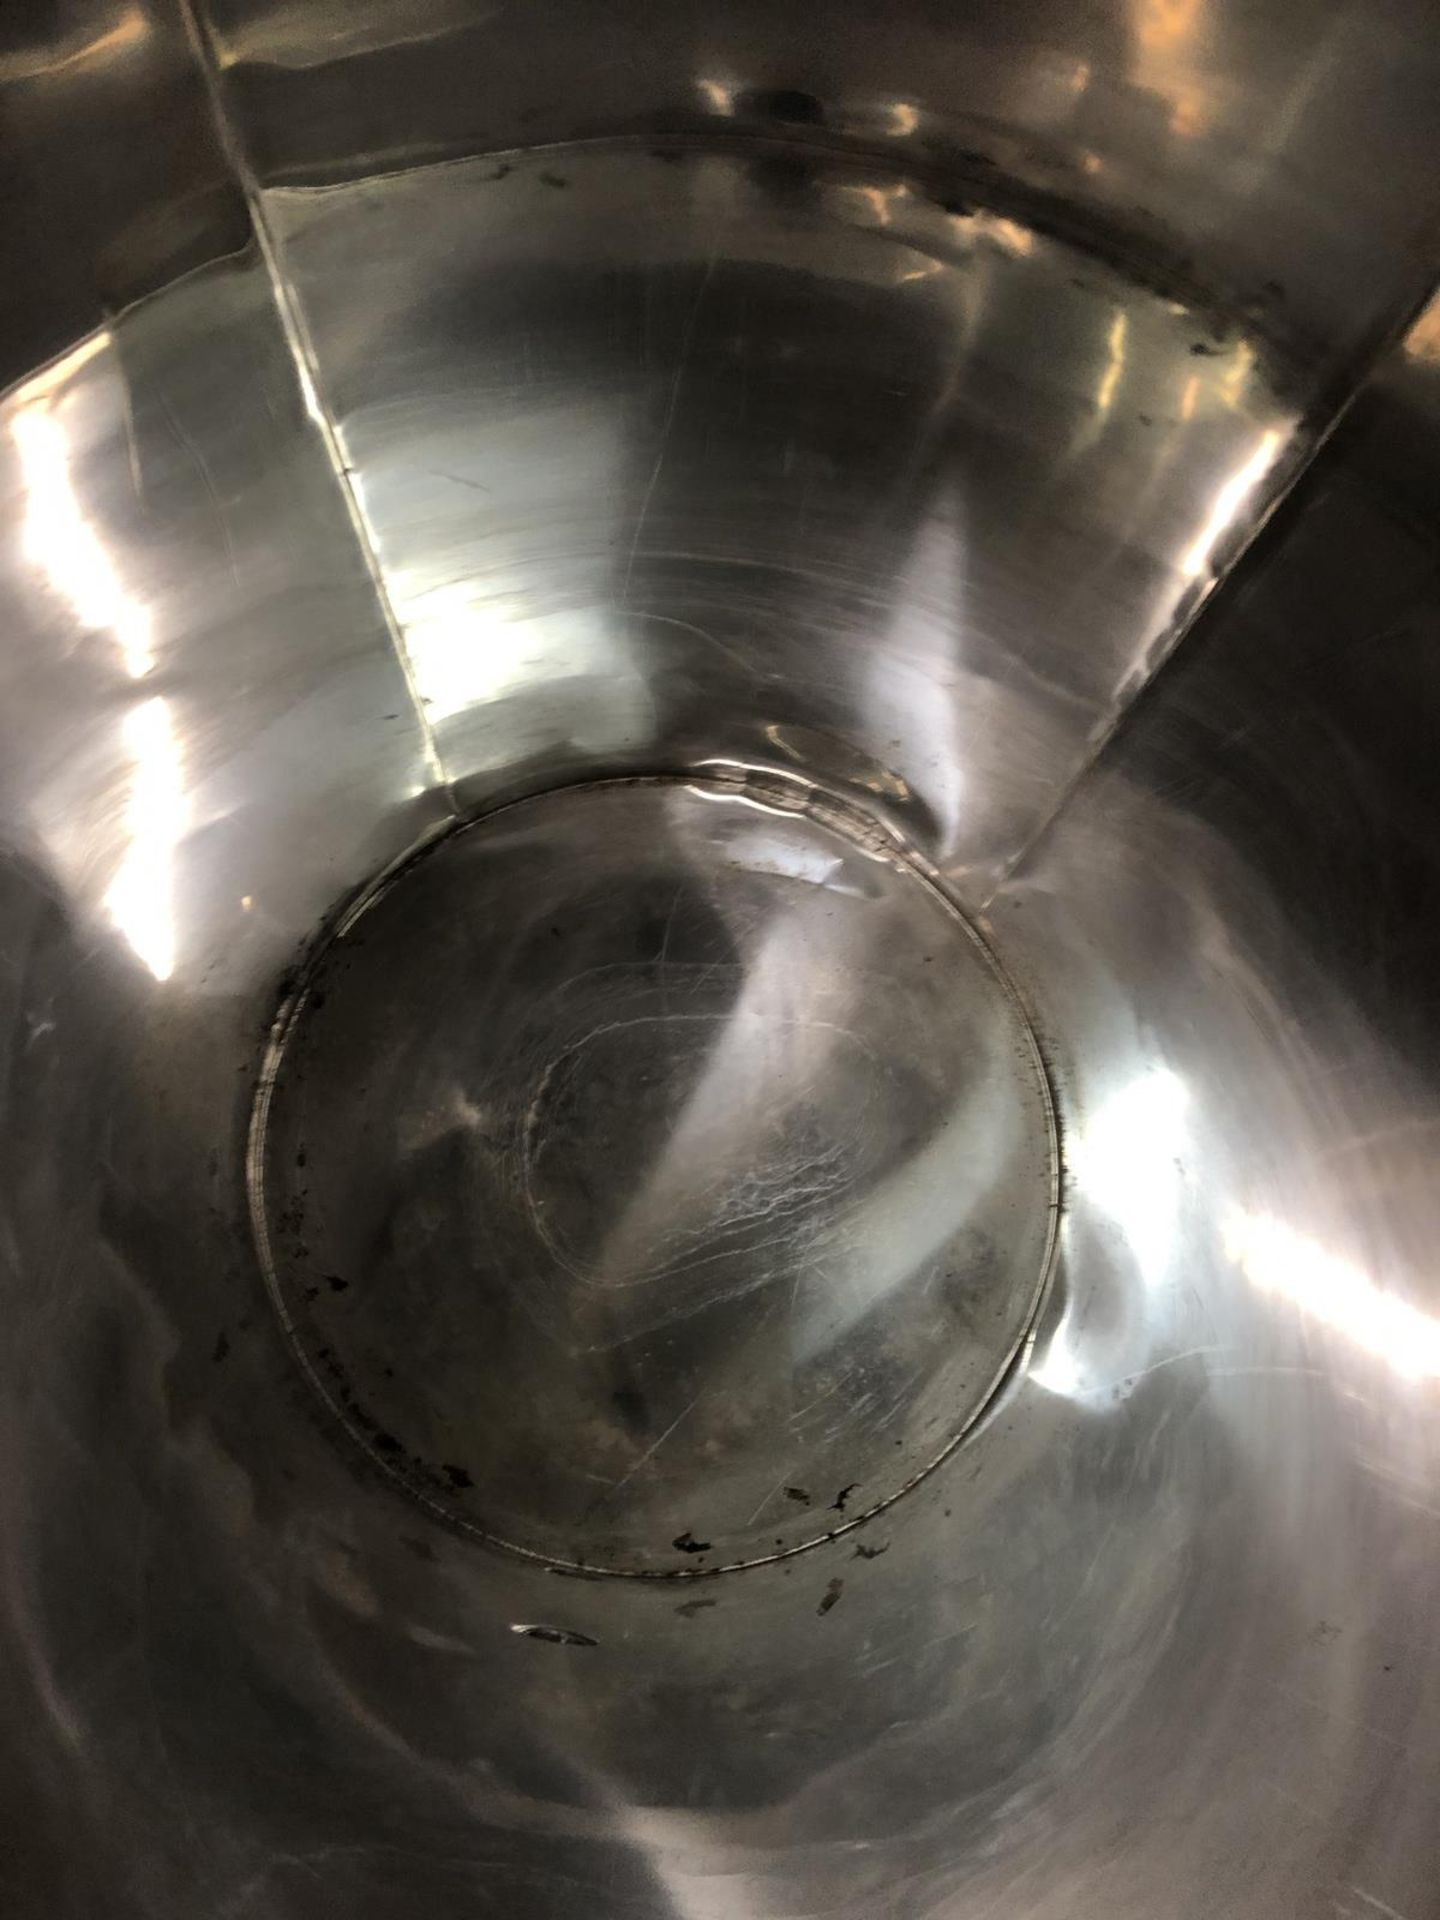 Lot 13D - Approx 75 Gallon Polished Stainless Steel Holding Tank | Sub to Bulk | Rig Fee: $35